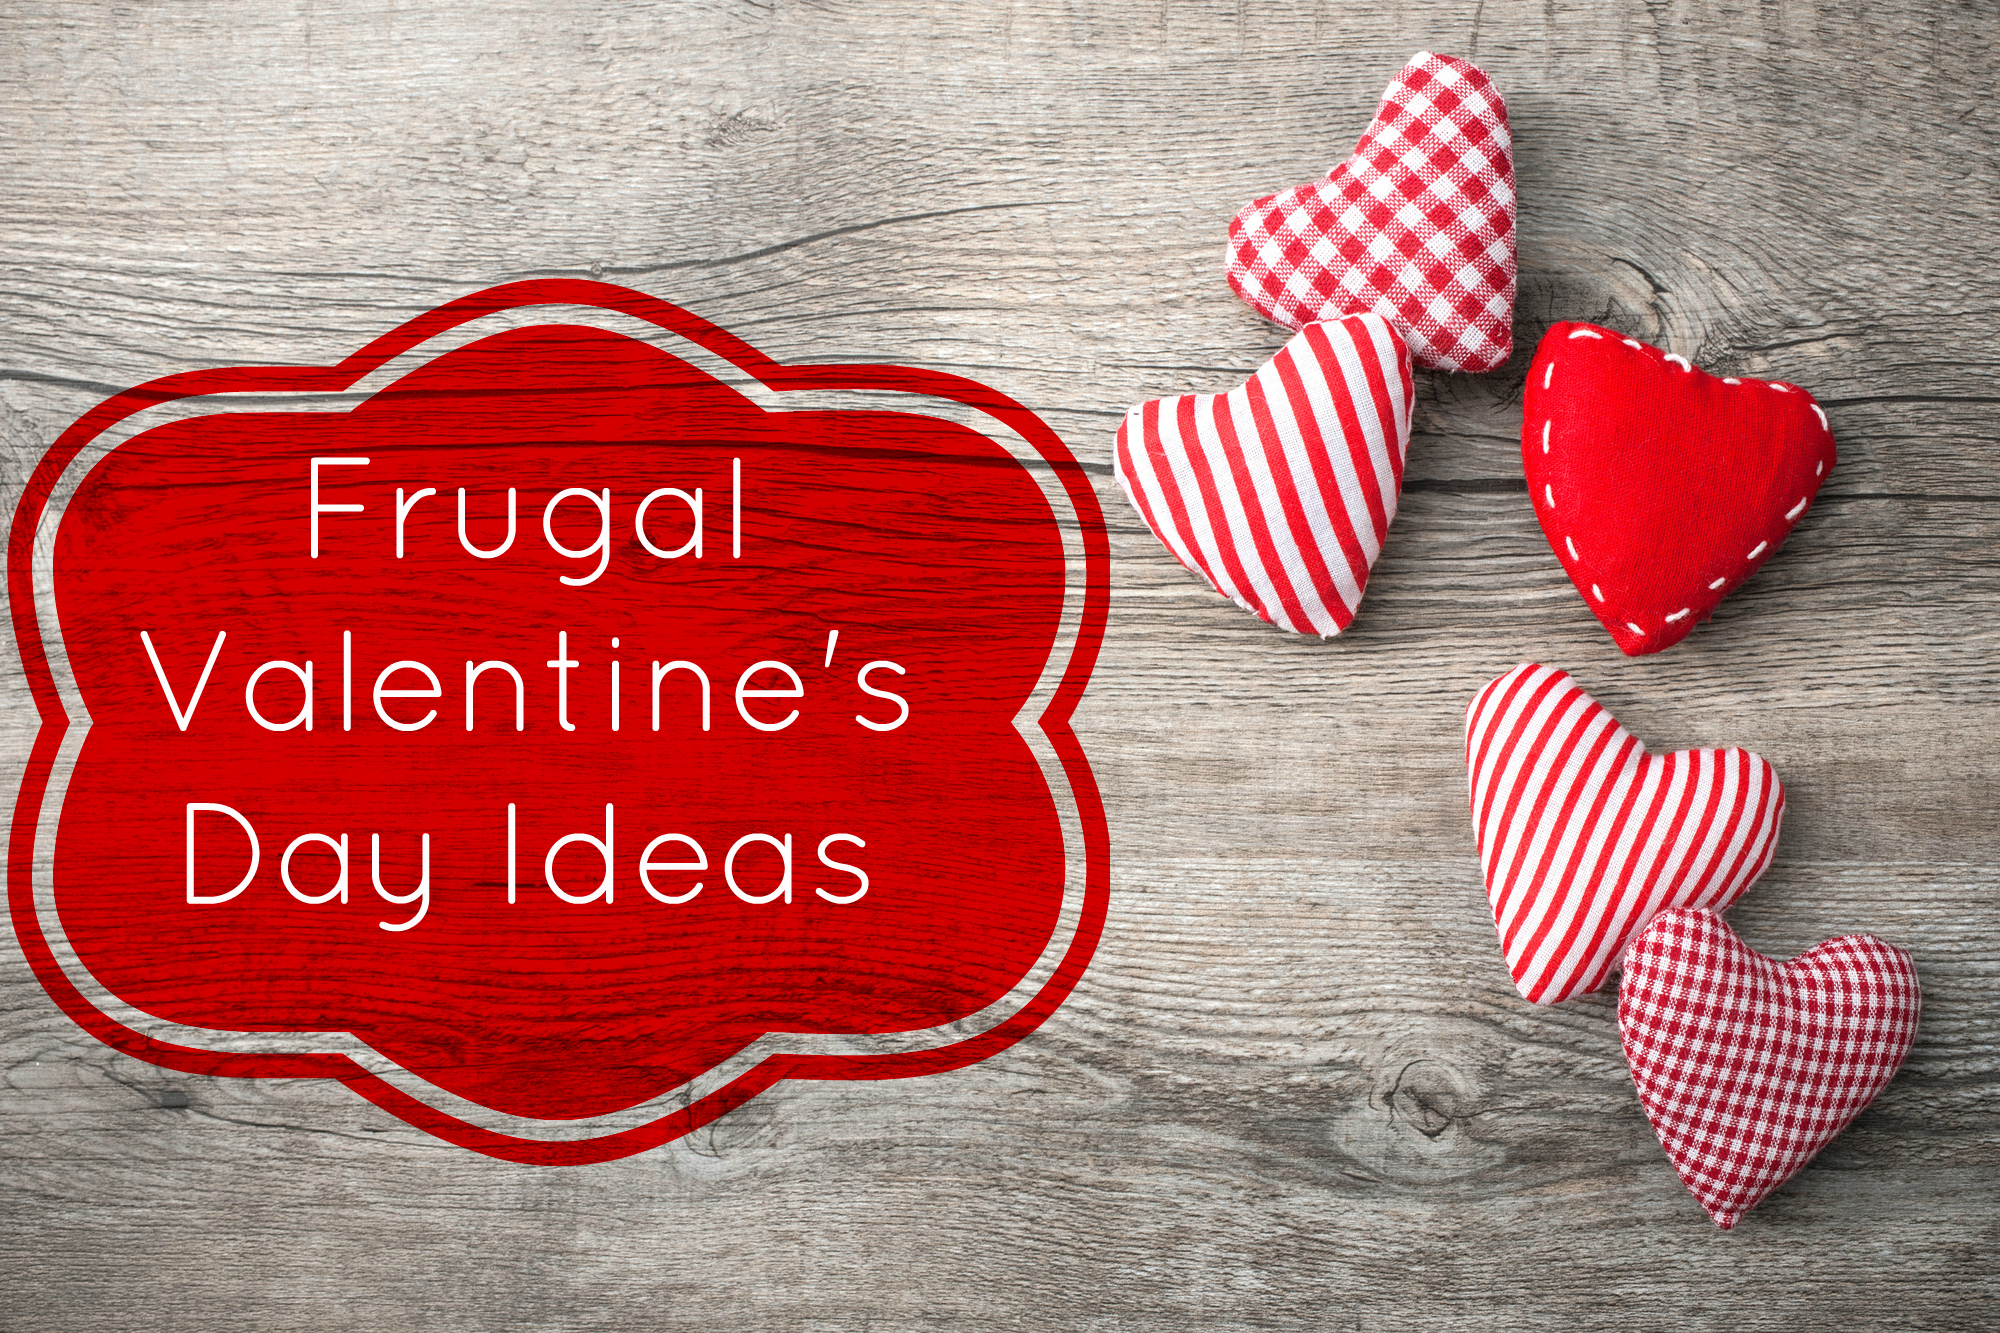 Frugal Valentine's Day Ideas: 11 Original Ways to Show Love